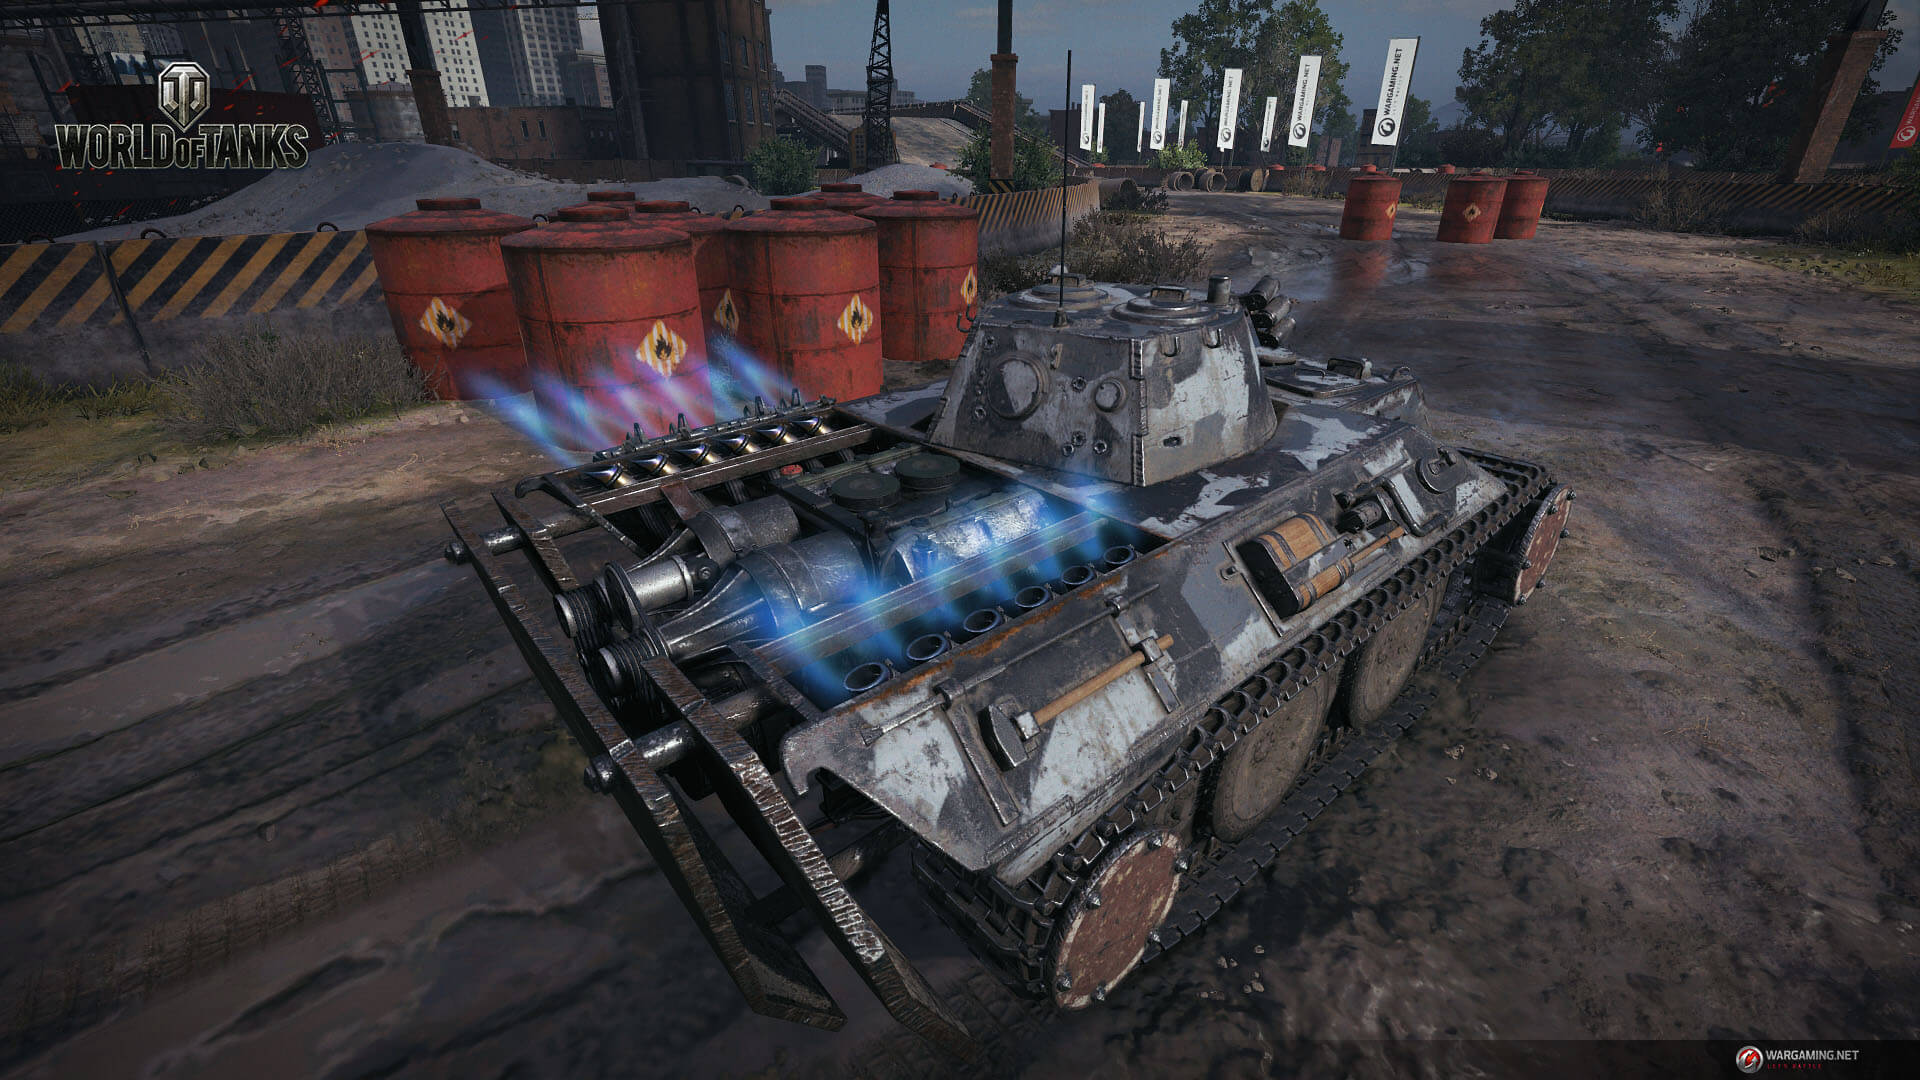 Обои World of tanks, мир танков, wot, chaffee sport, wargaming net, wg. Игры foto 6